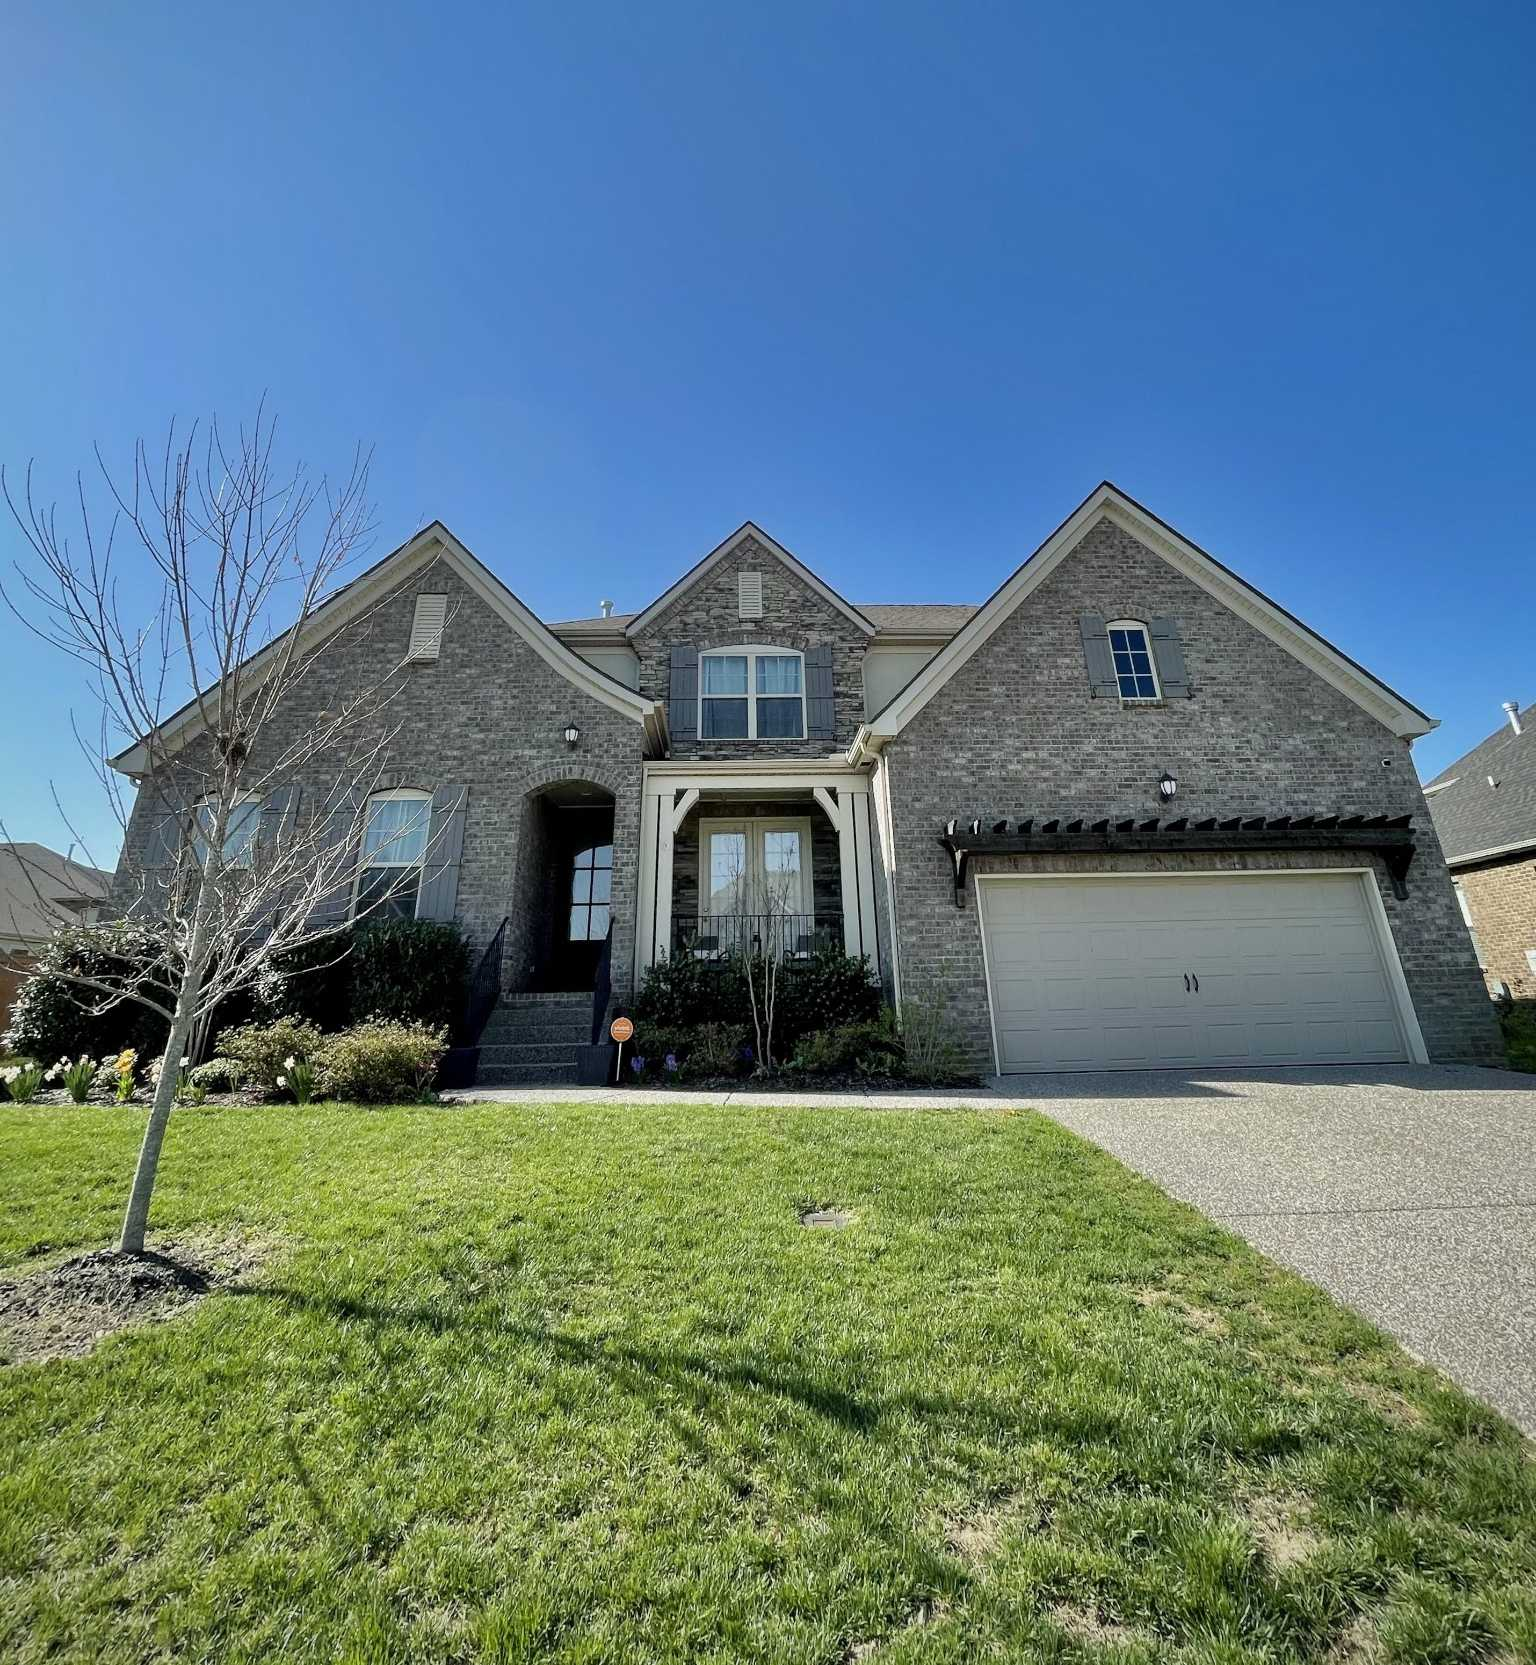 $499,900 - 4Br/3Ba -  for Sale in Copper Creek, Goodlettsville